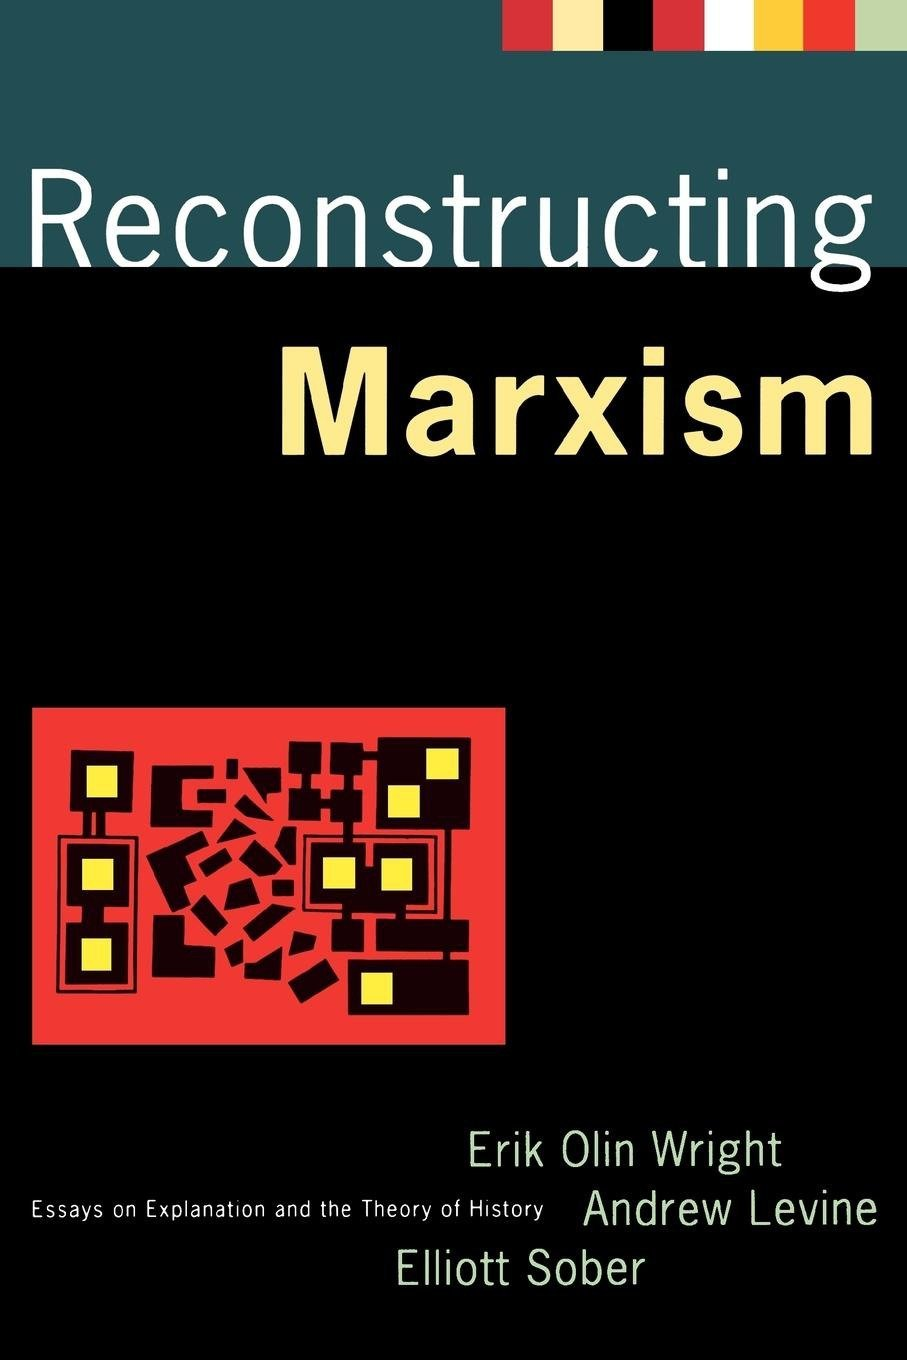 Essays On Different Topics In English Reconstructing Marxism Essays On Explanation And The Theory Of History  Erik Olin Wright Andrew Levine Elliott Sober  Amazoncom  Books Research Essay Proposal also High School Essay Format Reconstructing Marxism Essays On Explanation And The Theory Of  Business Ethics Essays